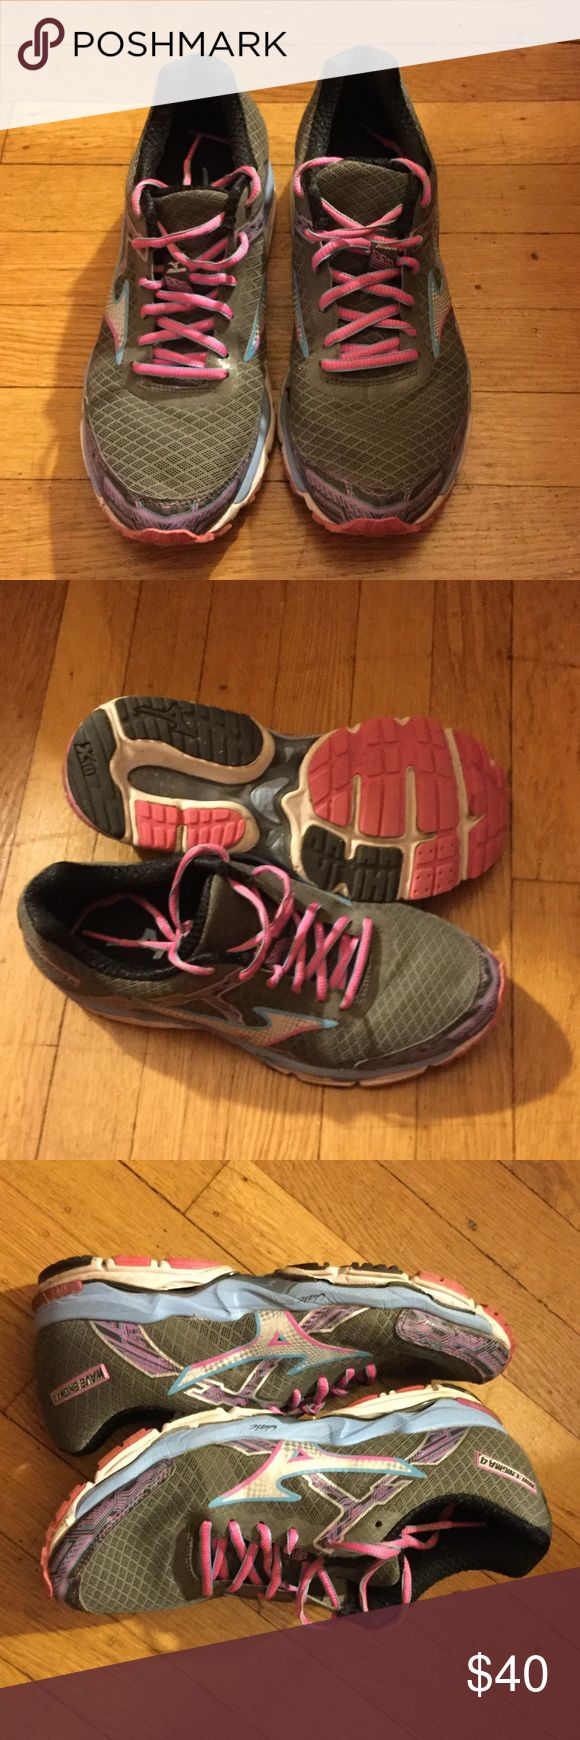 Minzuno running sneakers Minzuno Wave enigma 4 in great condition worn for a season. Pink, light blue, and grey sneakers. Mizuno Shoes Sneakers